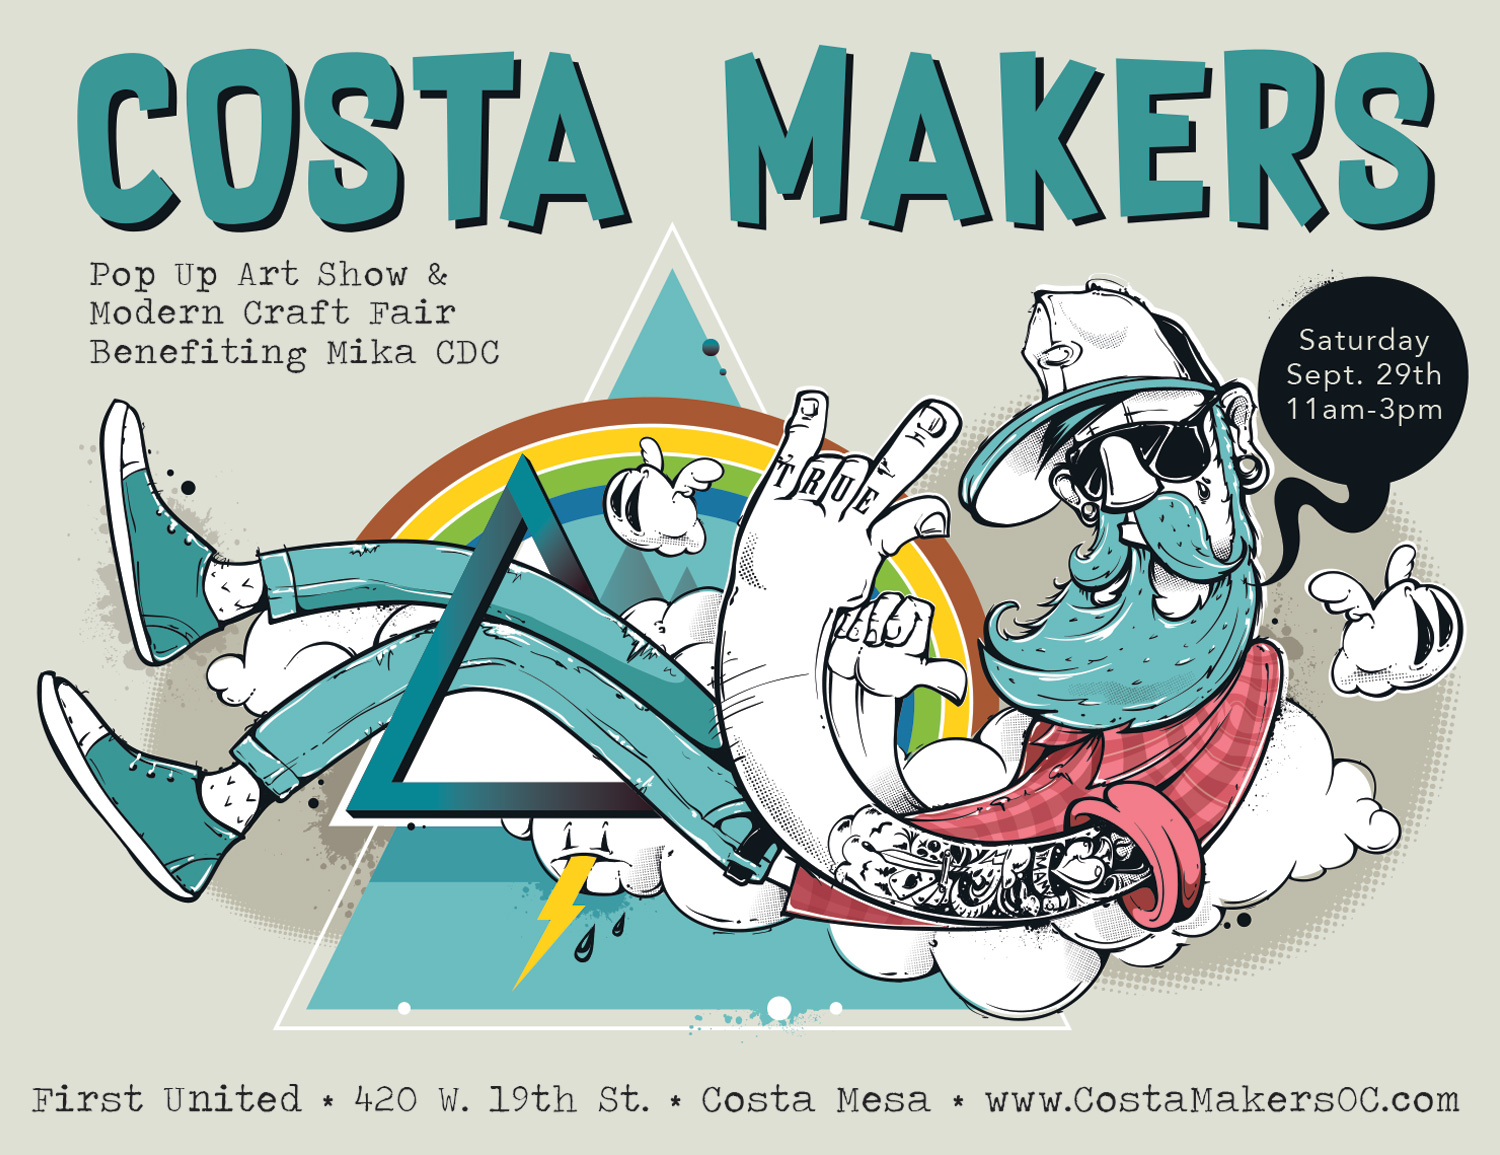 Costa Makers